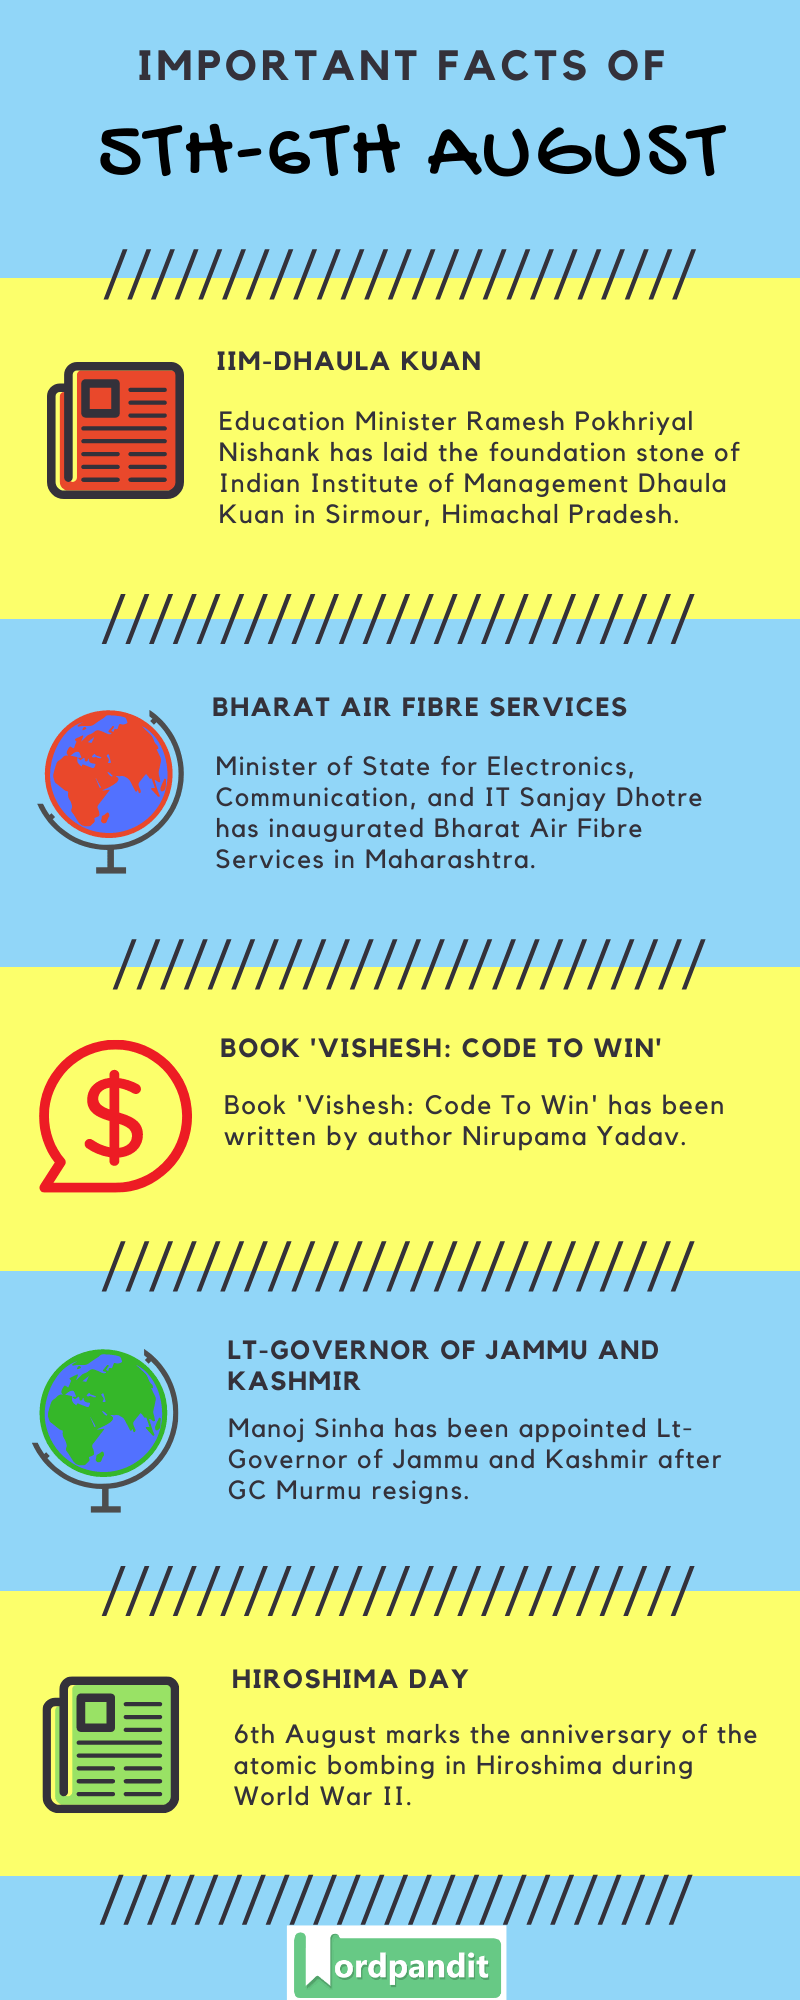 Daily Current Affairs 5th-6th August 2020 Current Affairs Quiz 5th-6th August 2020 Current Affairs Infographic